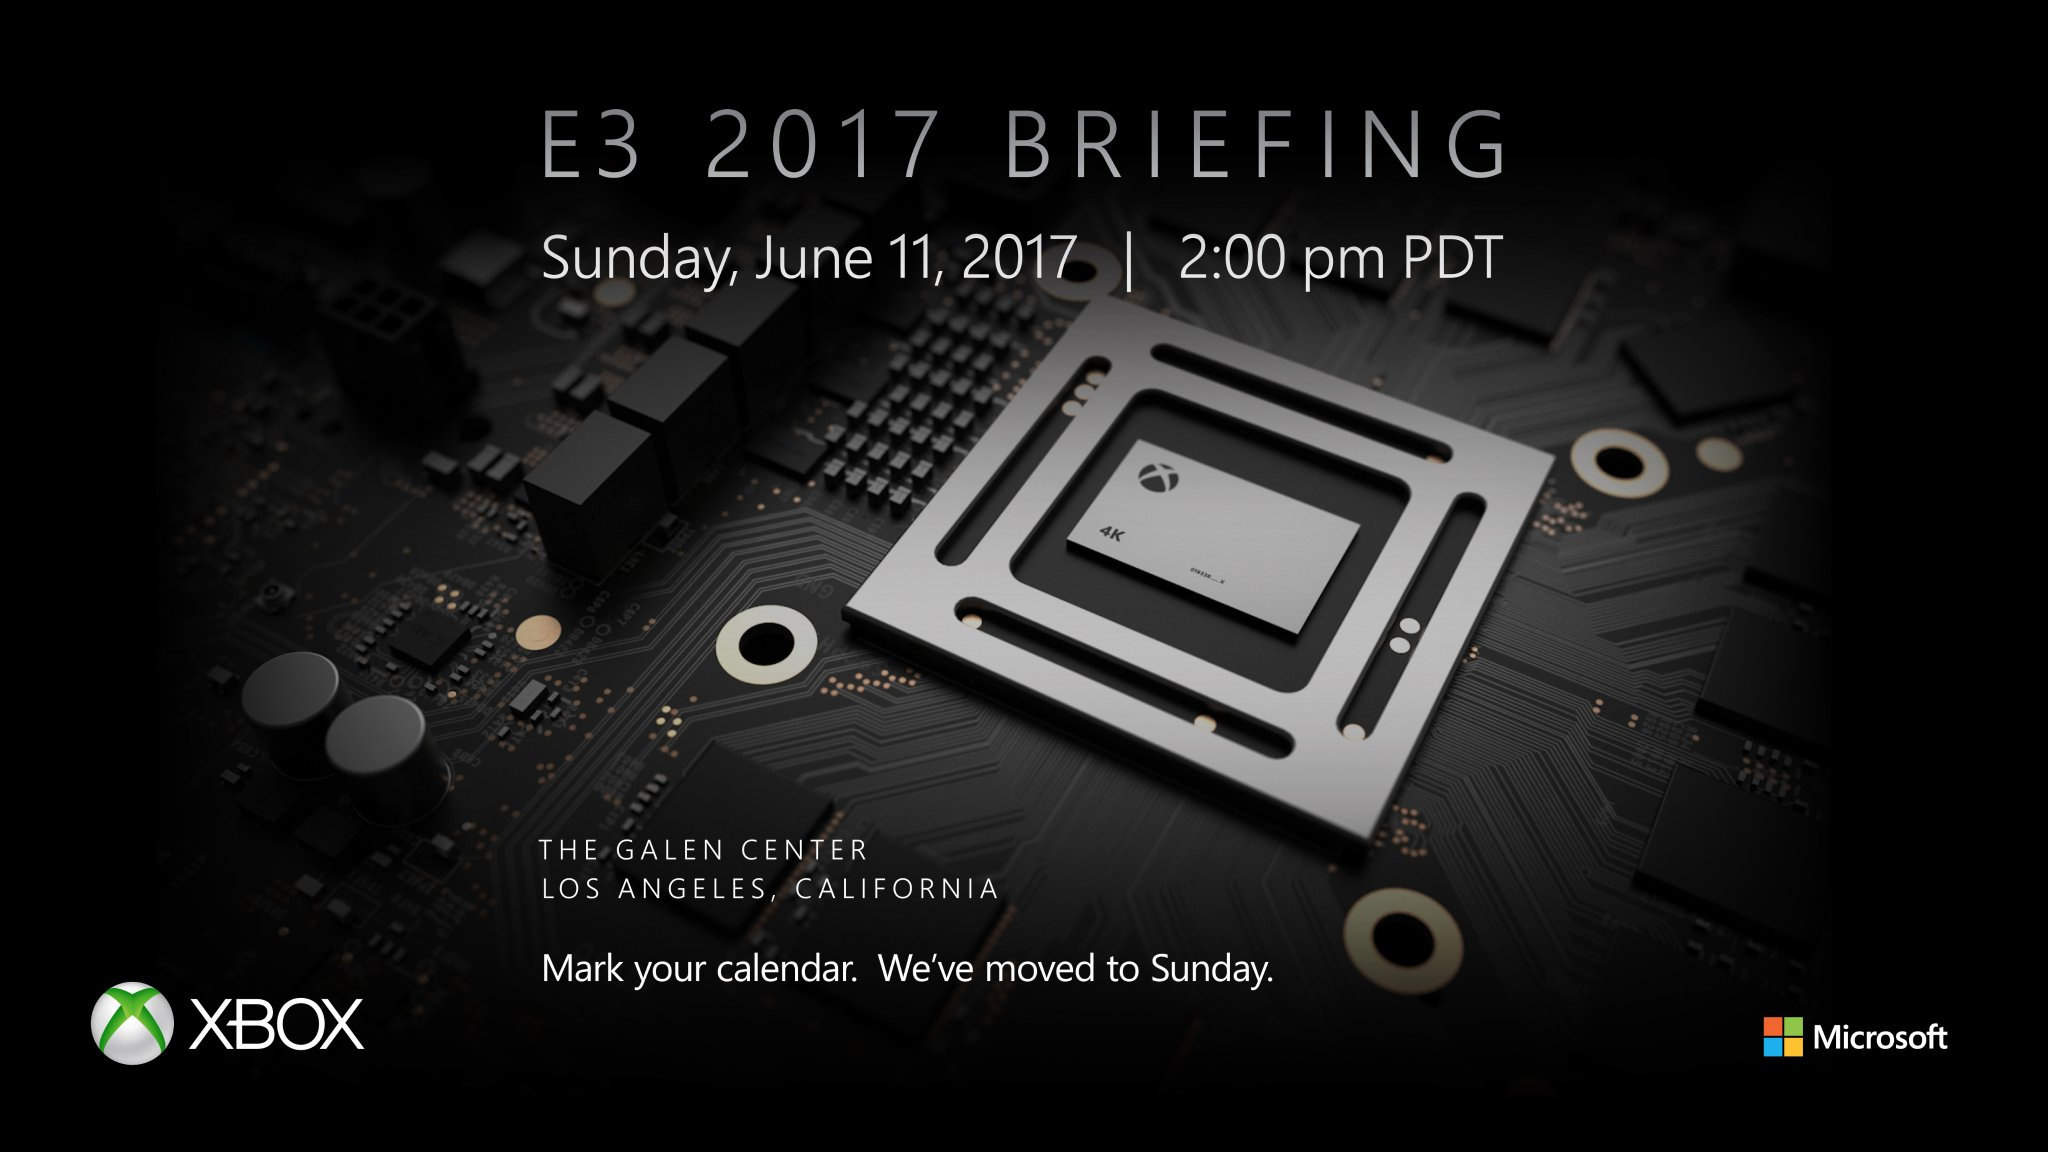 Microsoft expected to unveil Project Scorpio at E3 on June 11